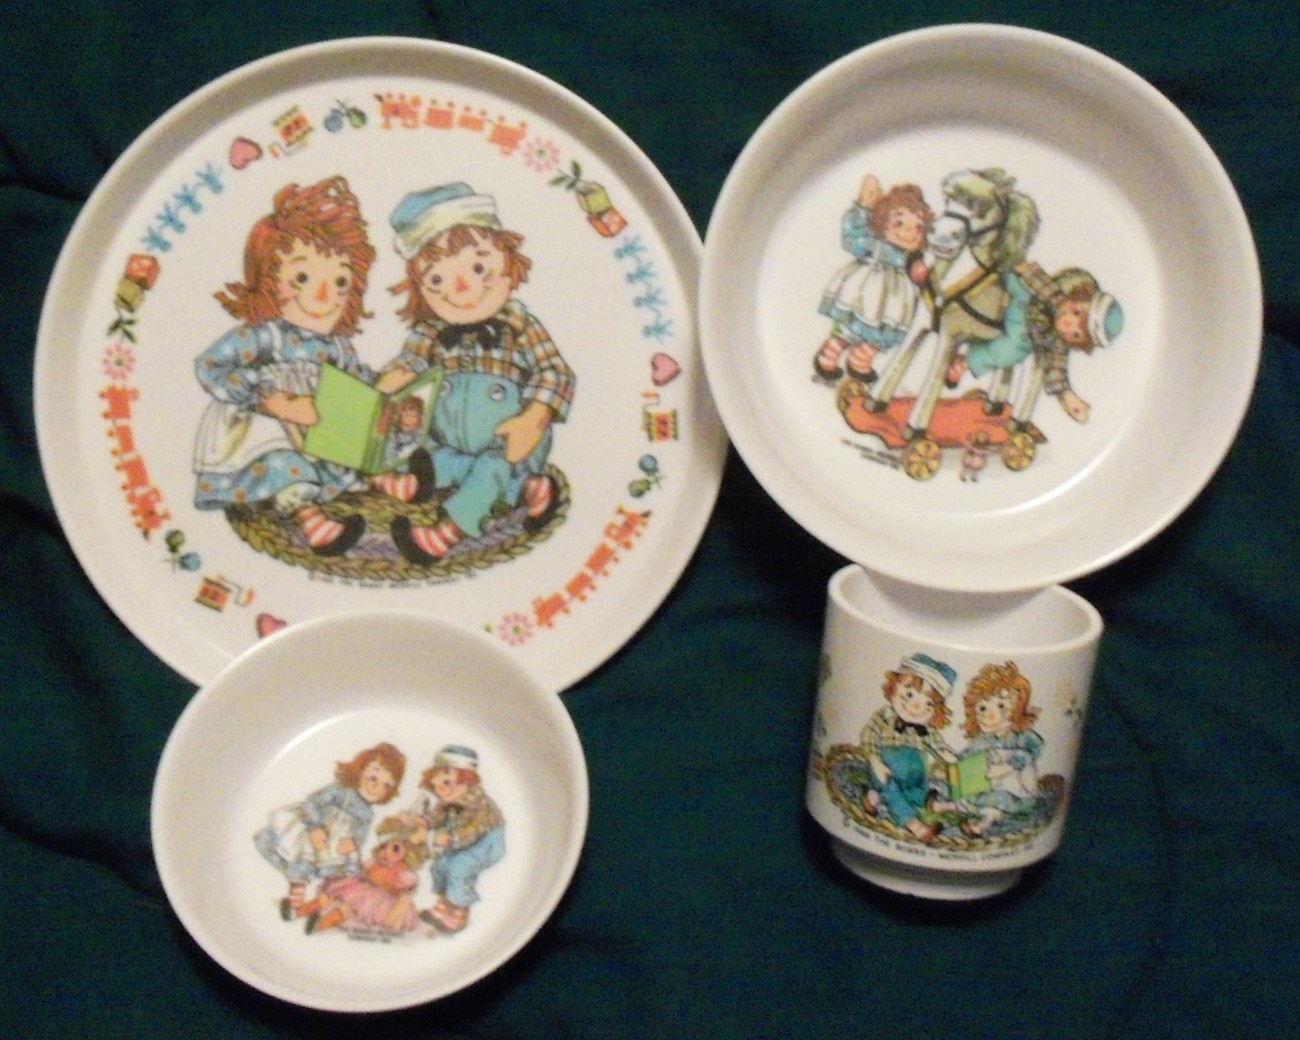 Primary image for Vintage Raggedy Ann Andy Oneida Melamine Plate Bowl Cup Set 4 pieces